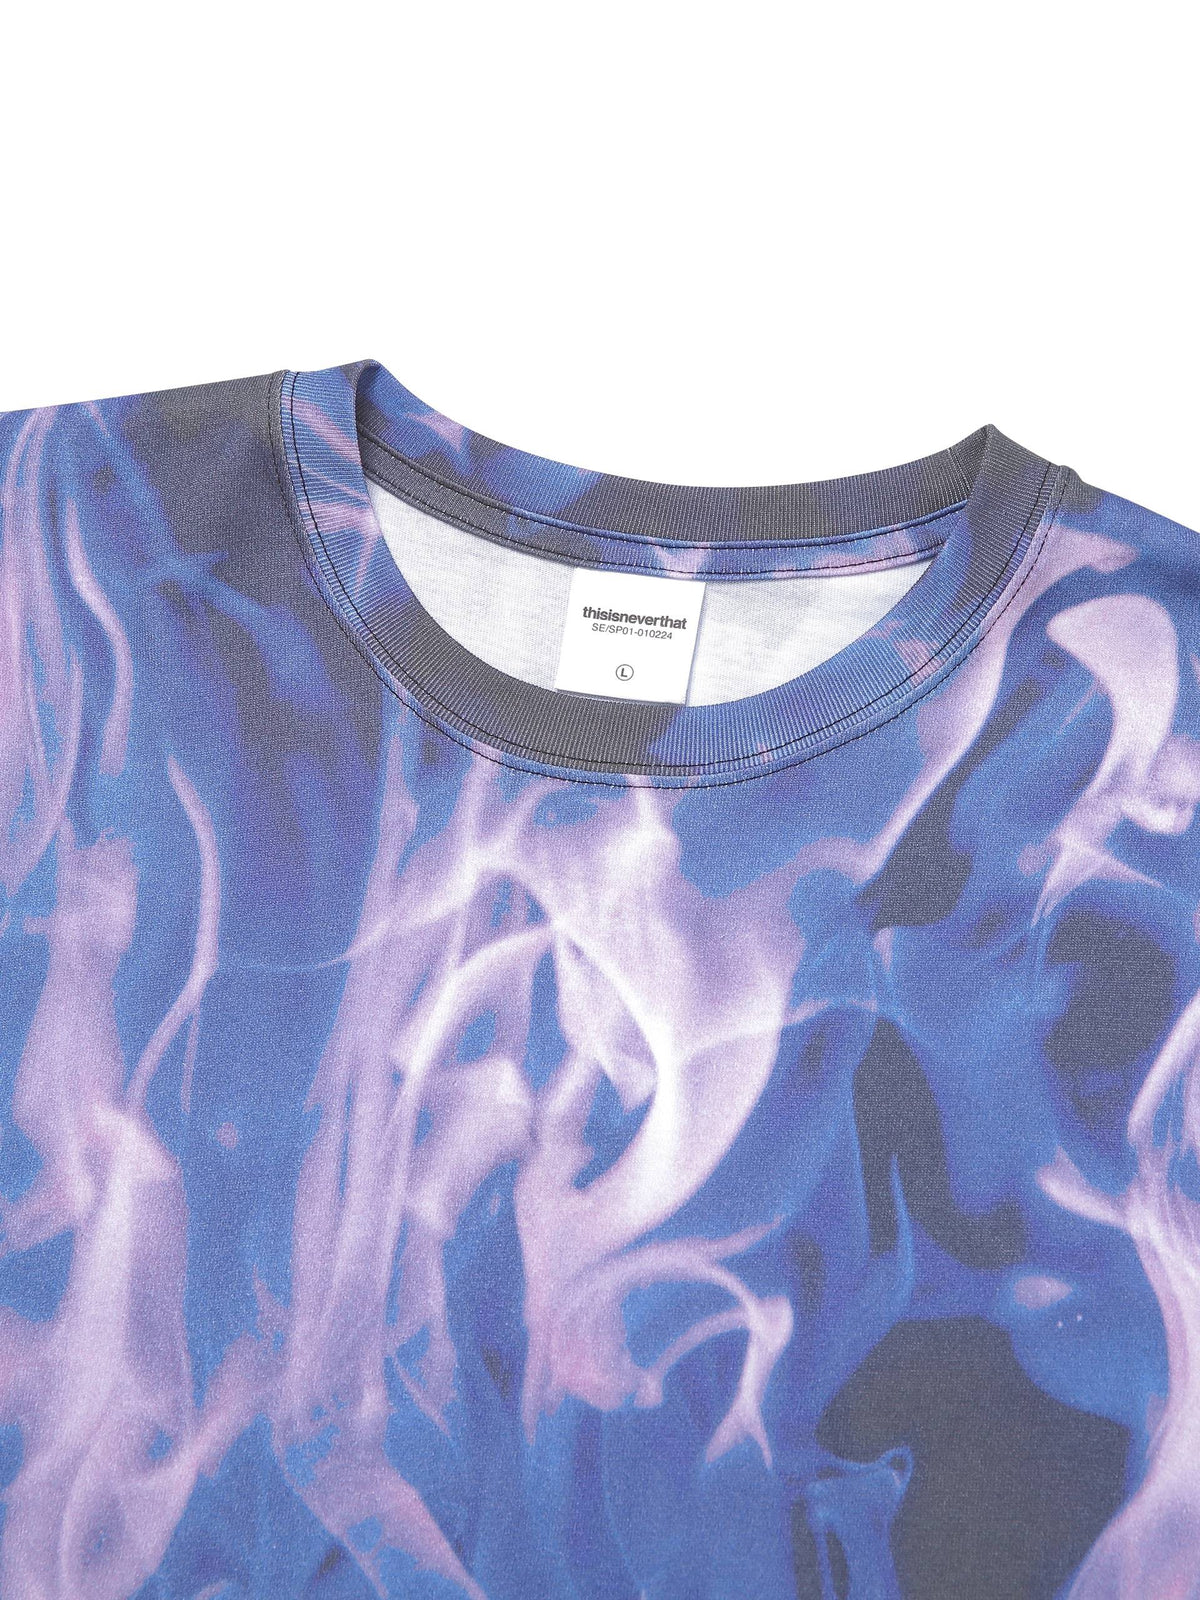 Blaze L/SL Top L/SL T-Shirt